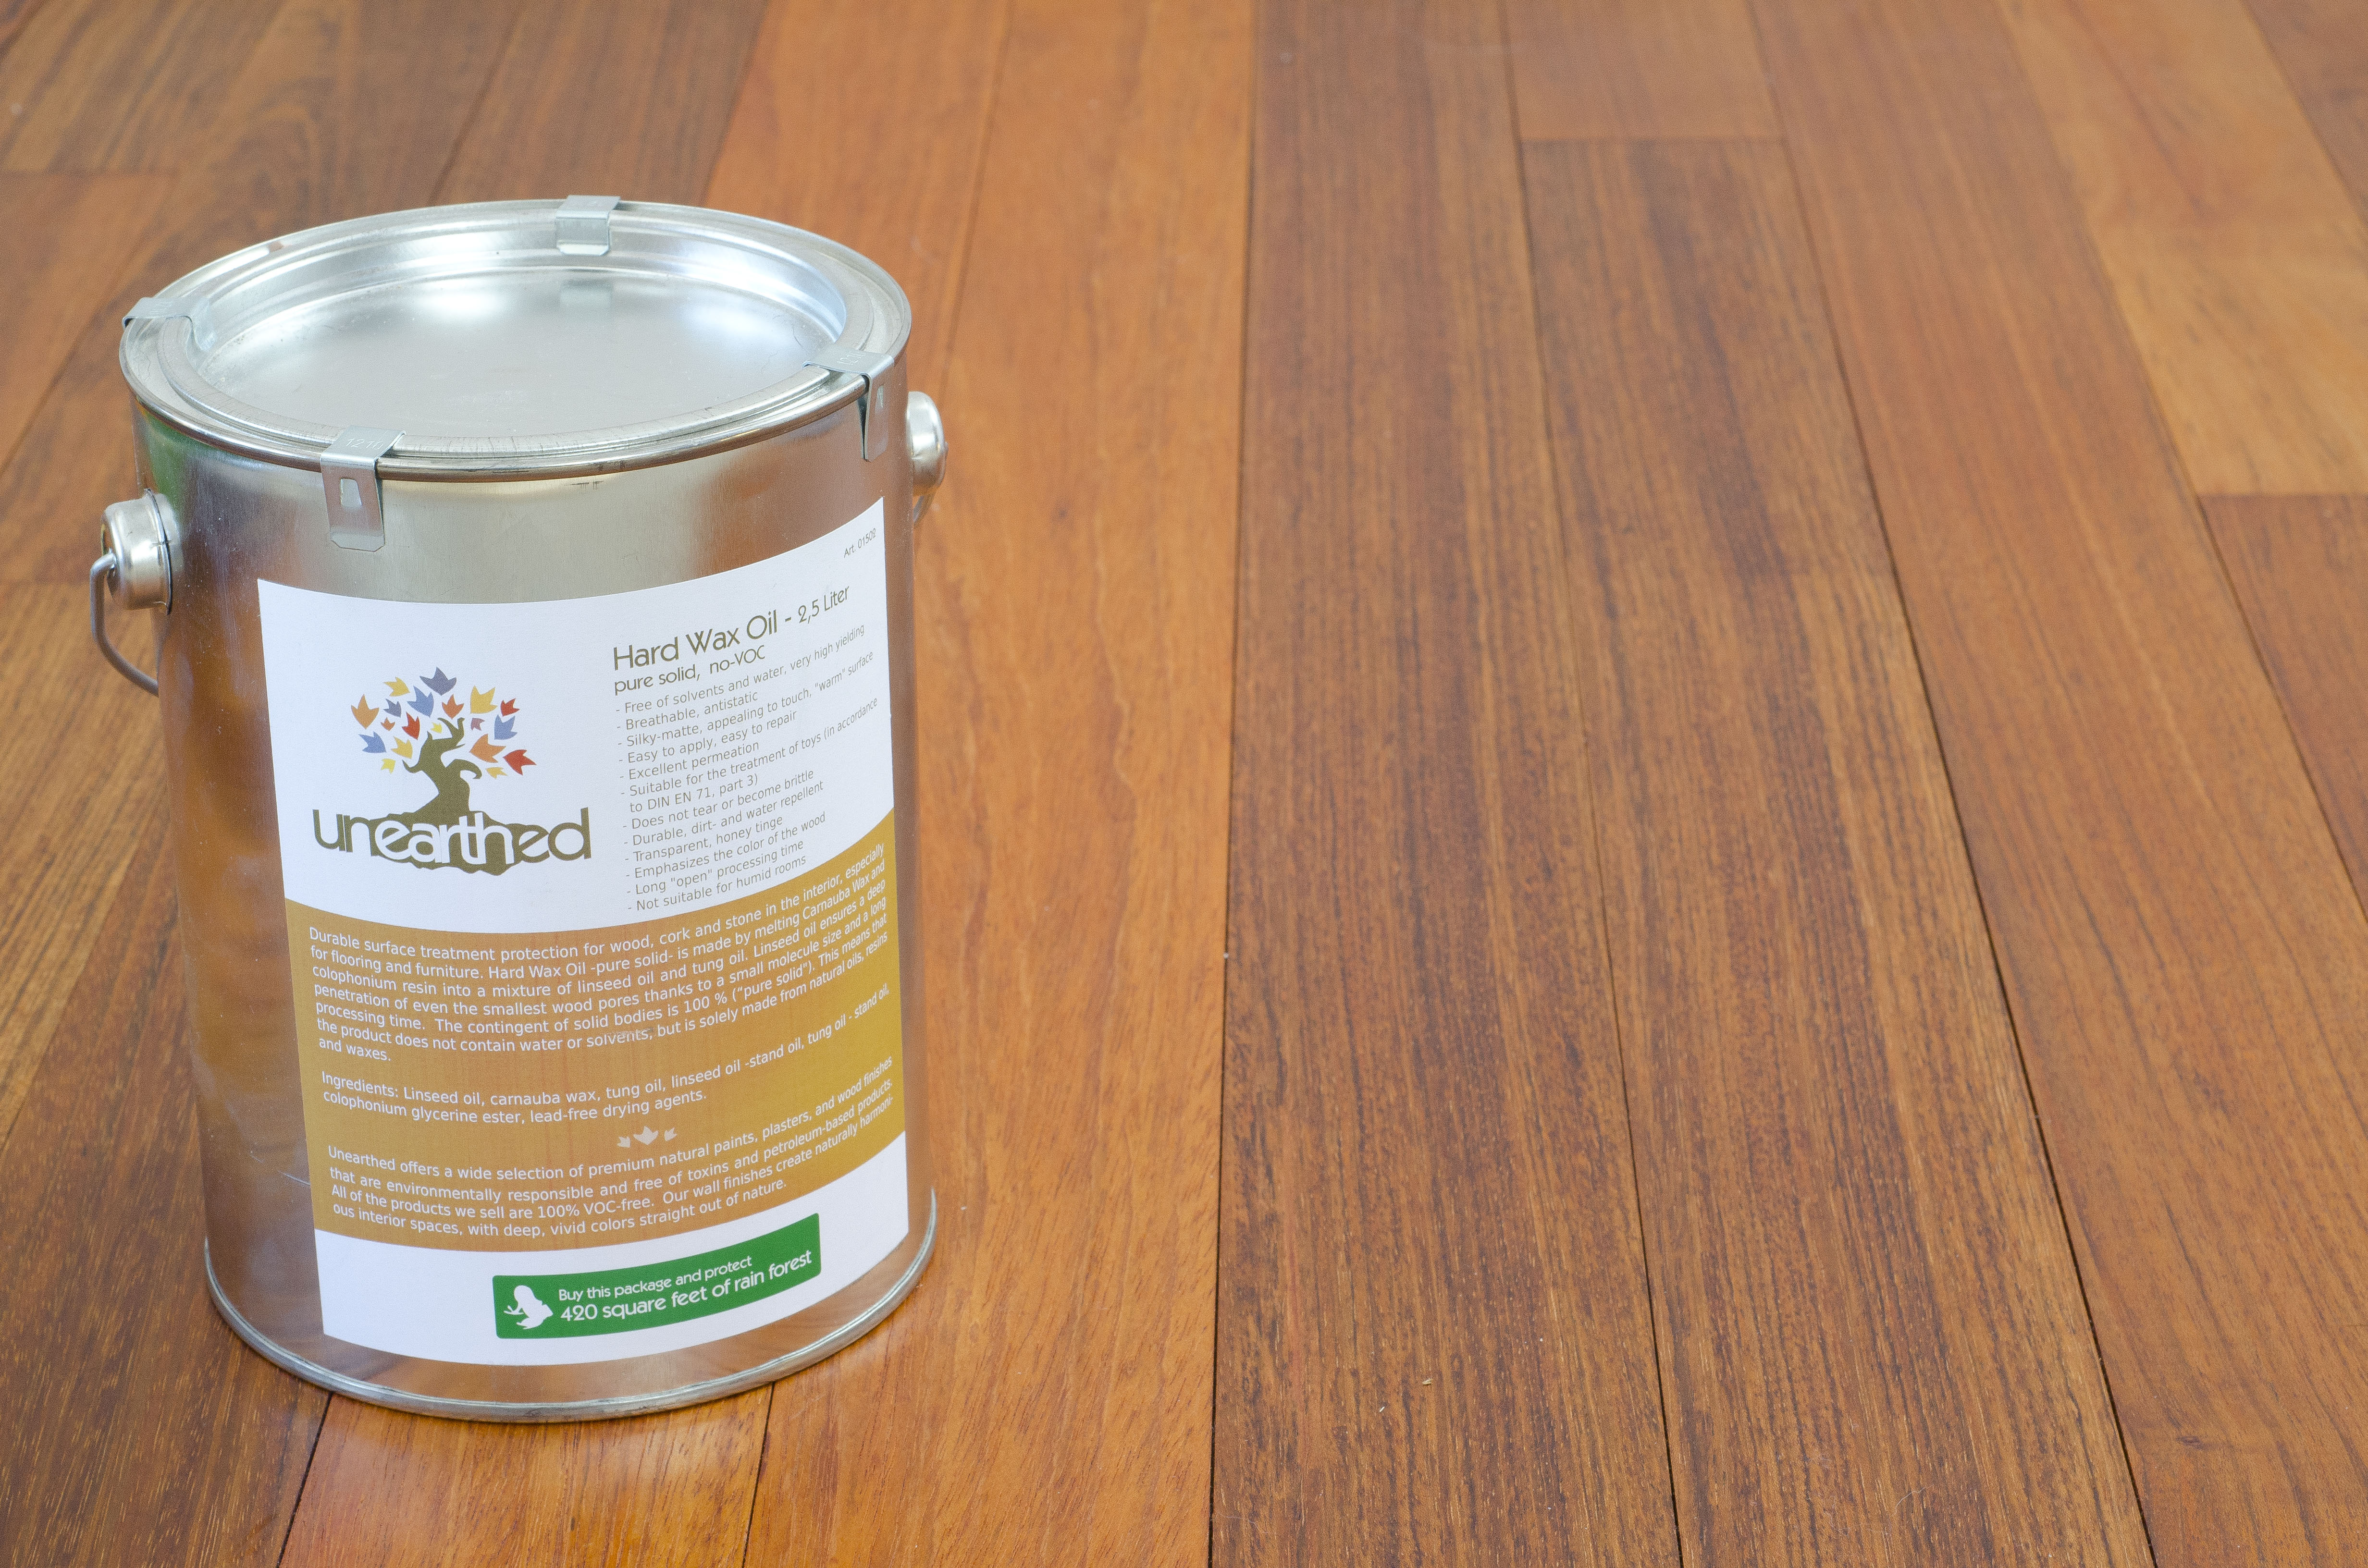 Unearthed Paints Hard Wax Oil Finish